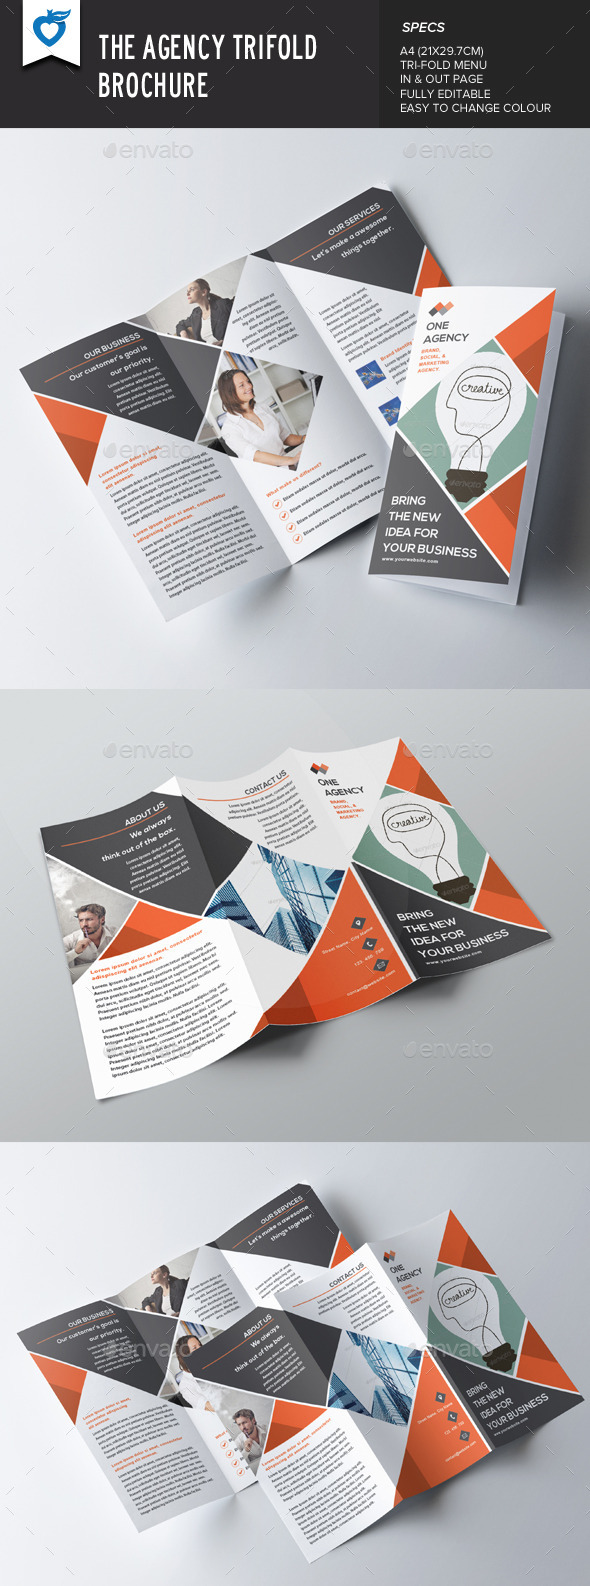 GraphicRiver The Agency Trifold Brochure 9191569